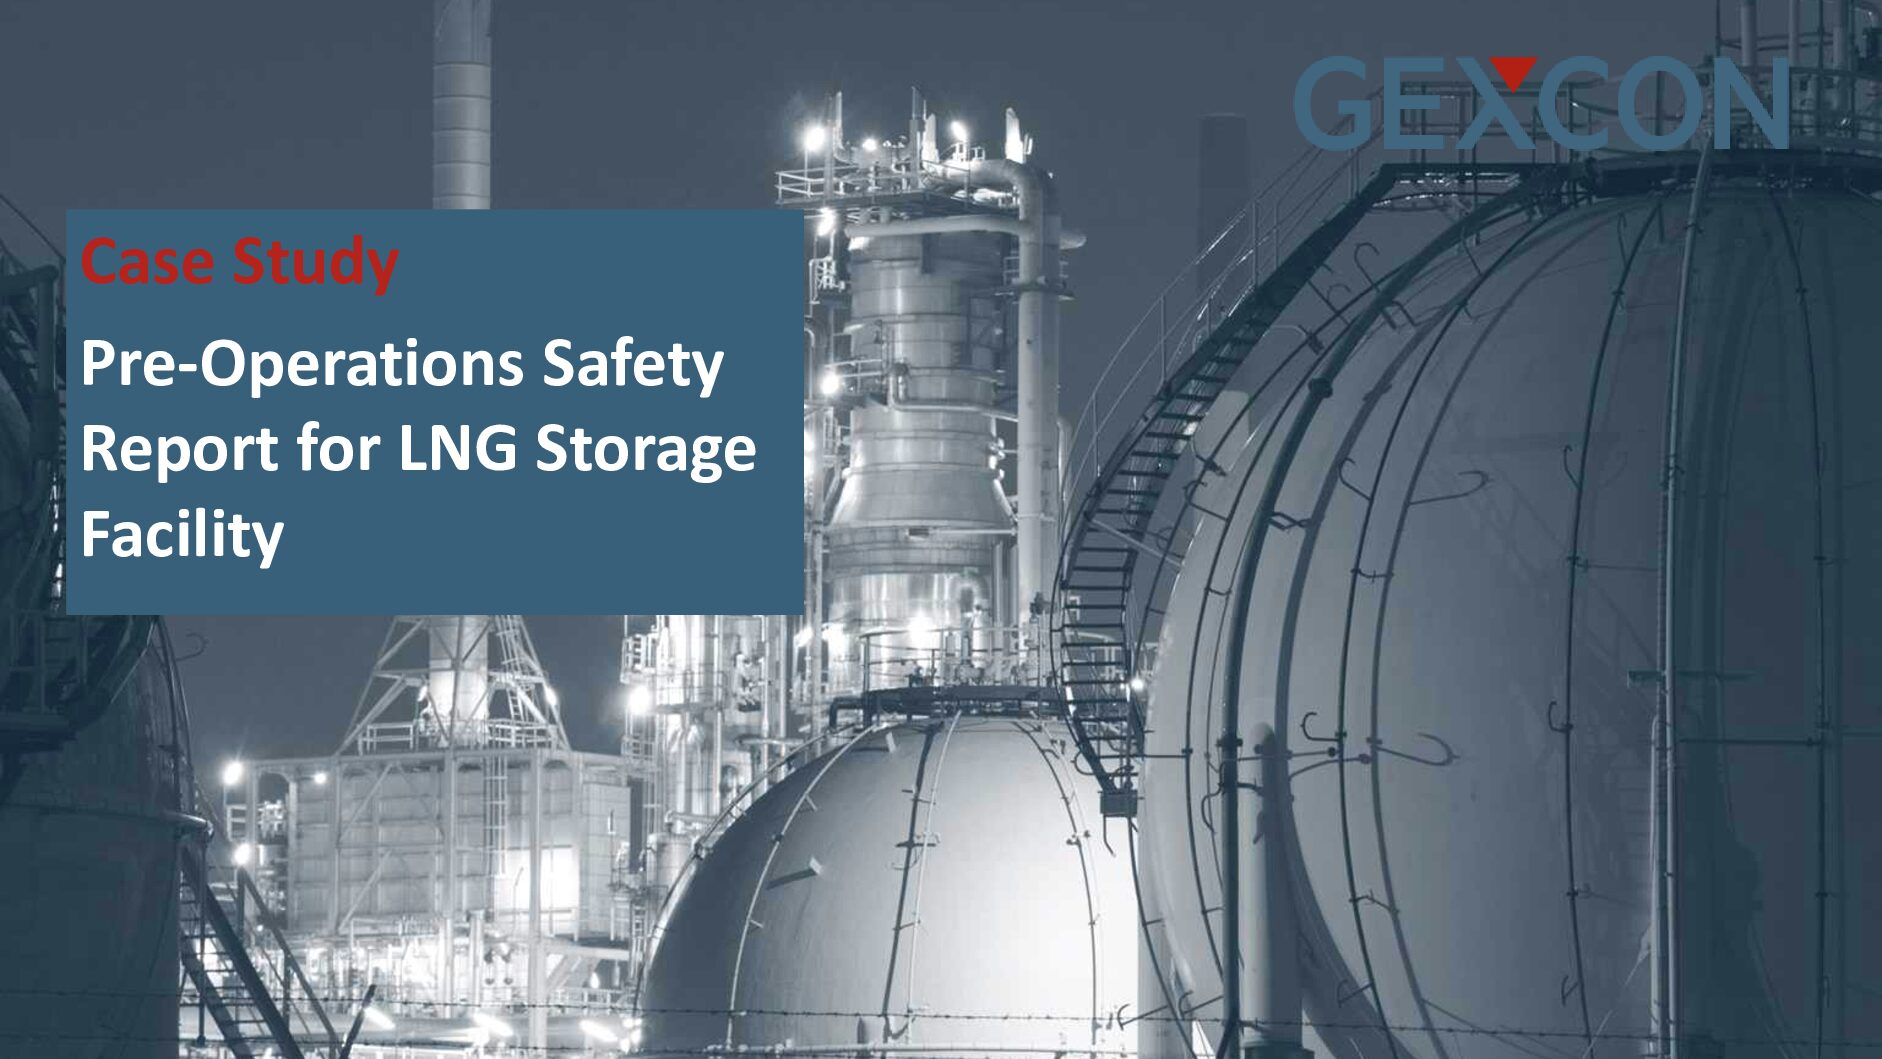 Pre-Operations Safety Report for LNG Storage Facility